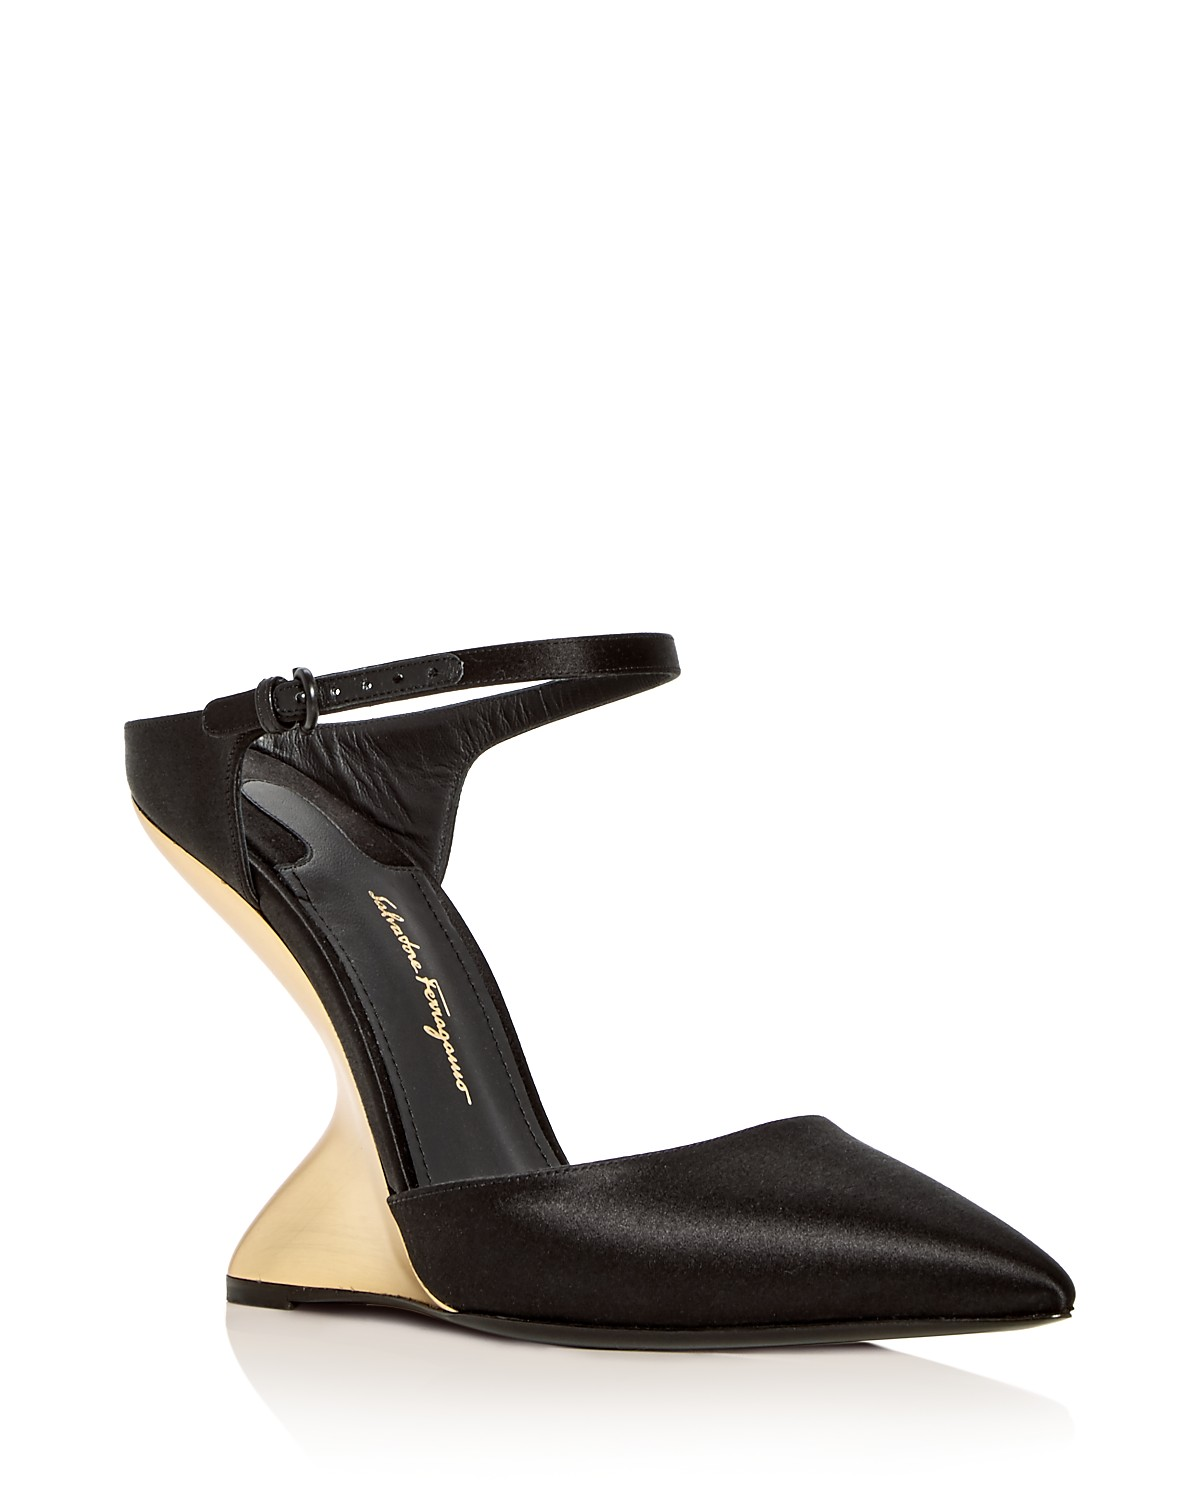 Salvatore Ferragamo Women's Naturno Satin F-Wedge Pumps qHsQbCPgU